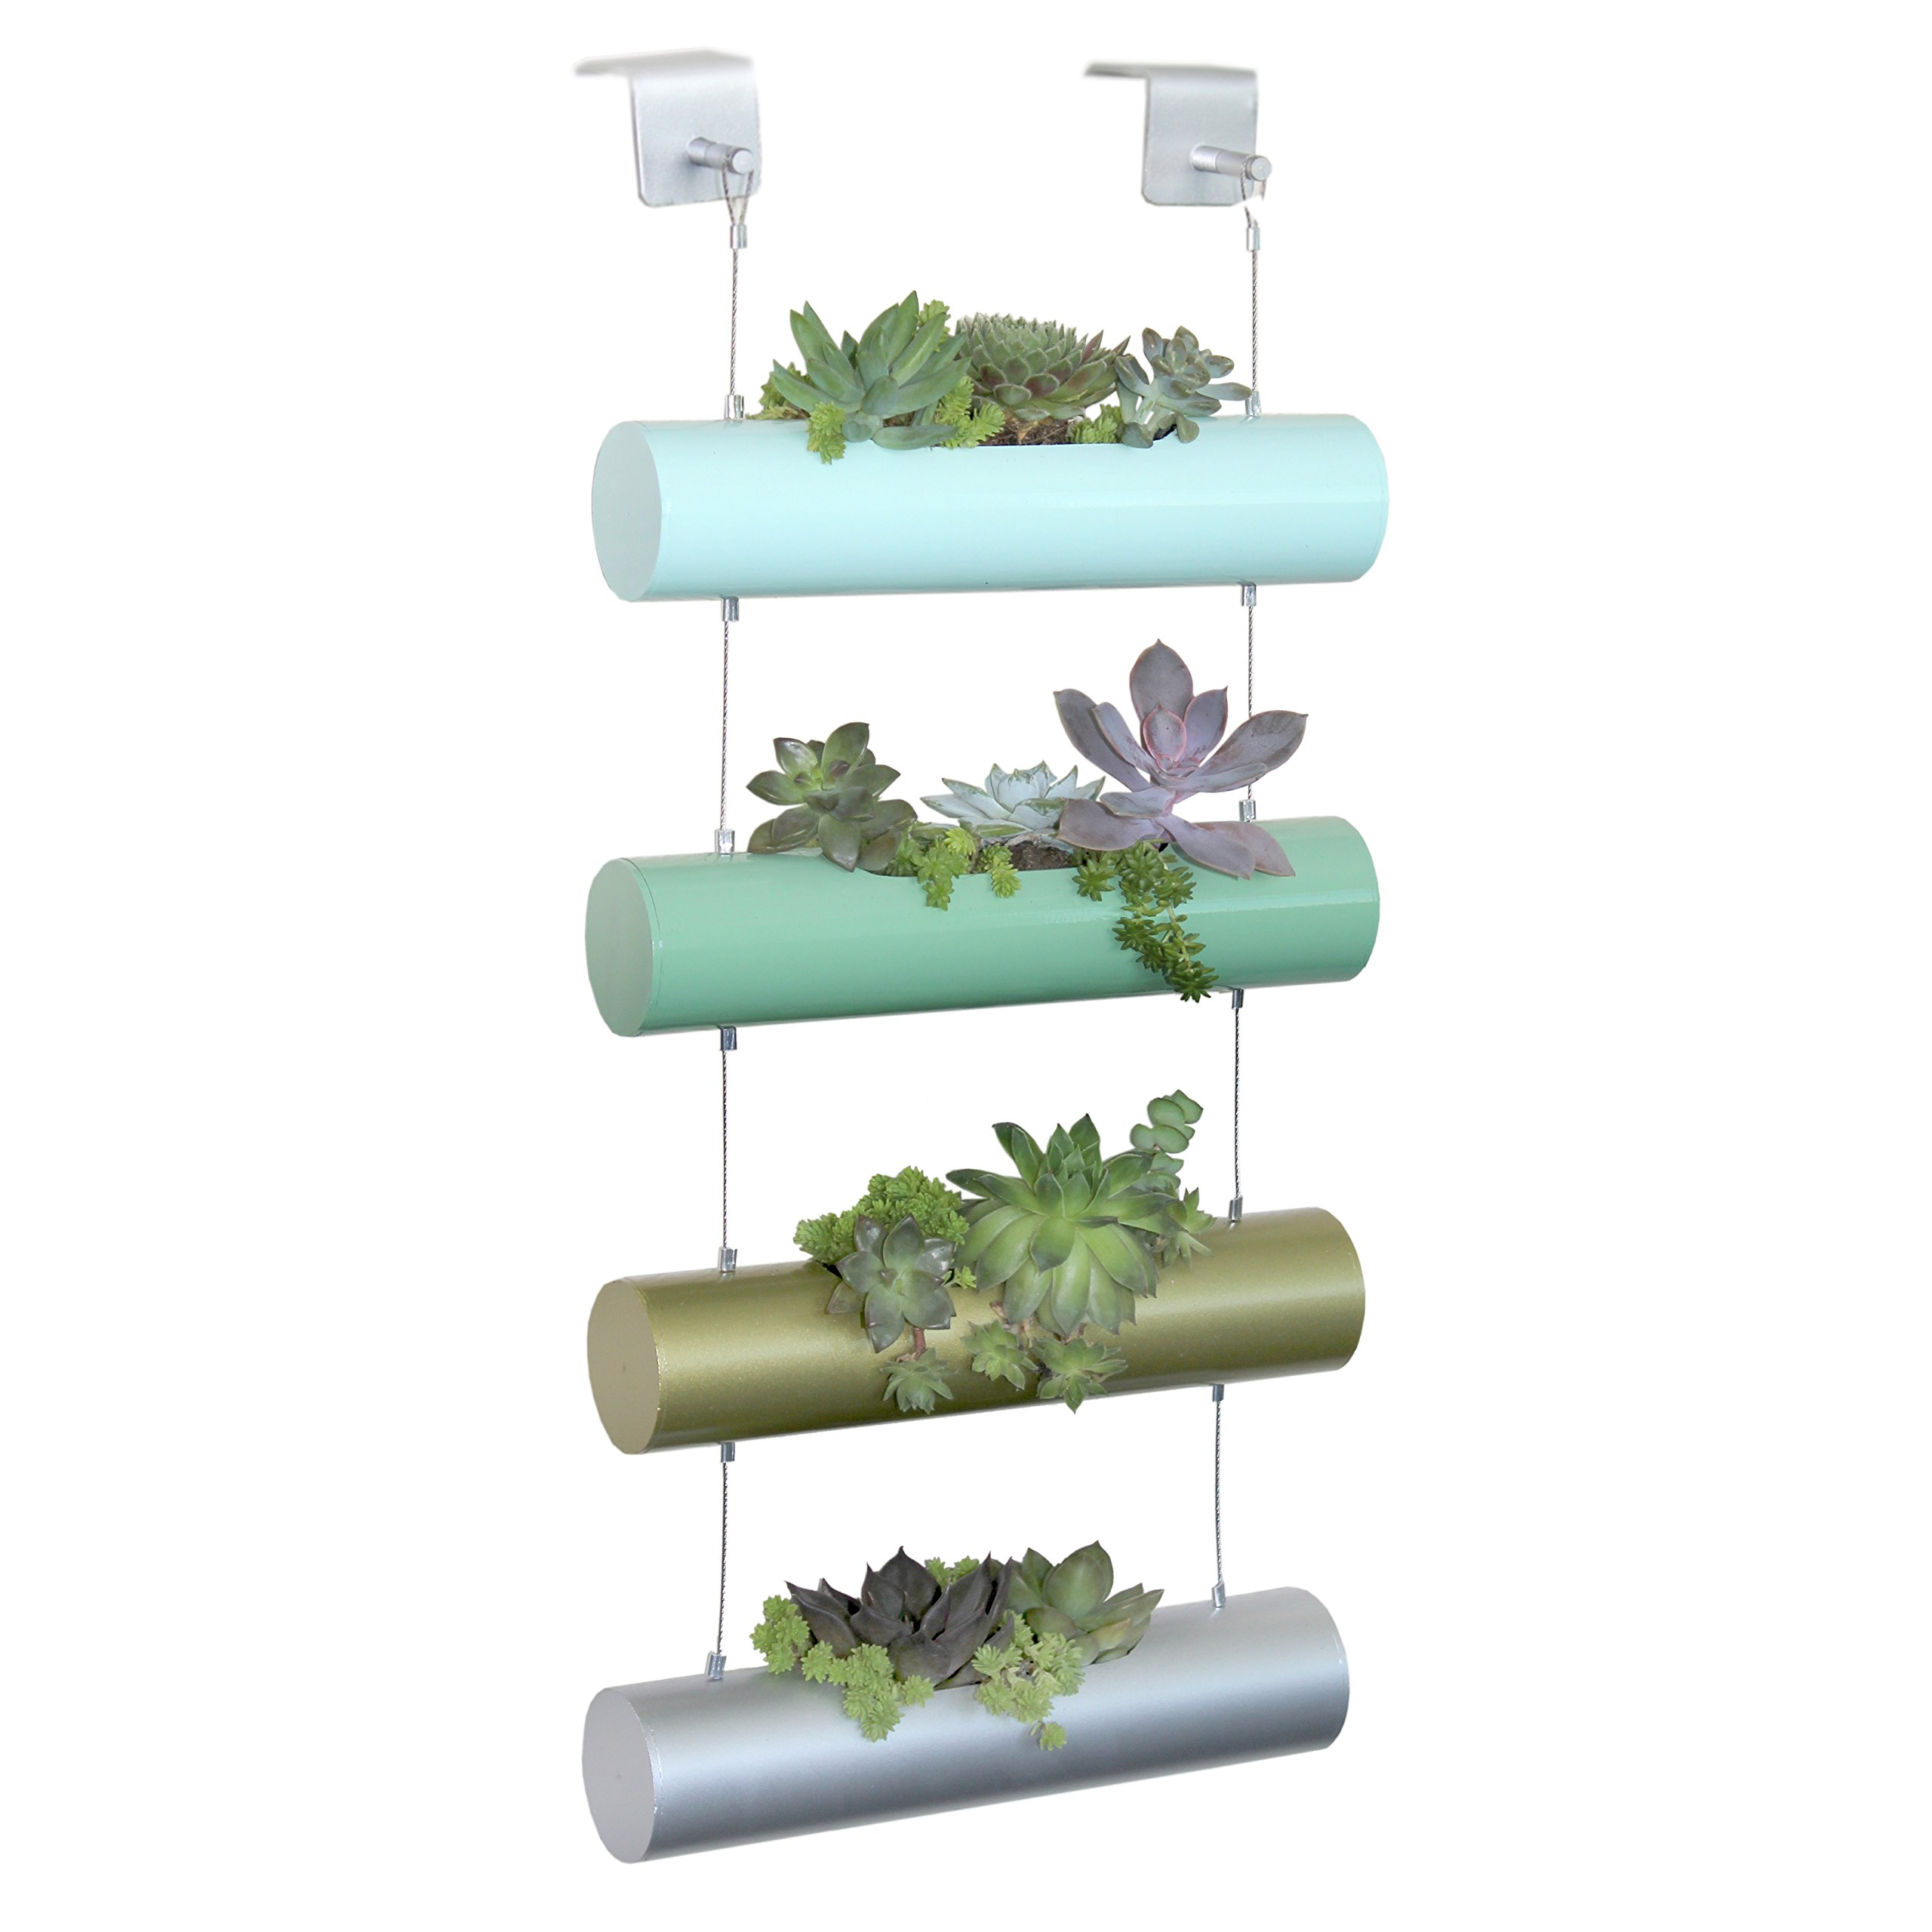 A6007 Four Season Vertical Zen Micro Garden Planter Succulent Cactus Small Plants Herbs Planting Cylinder System